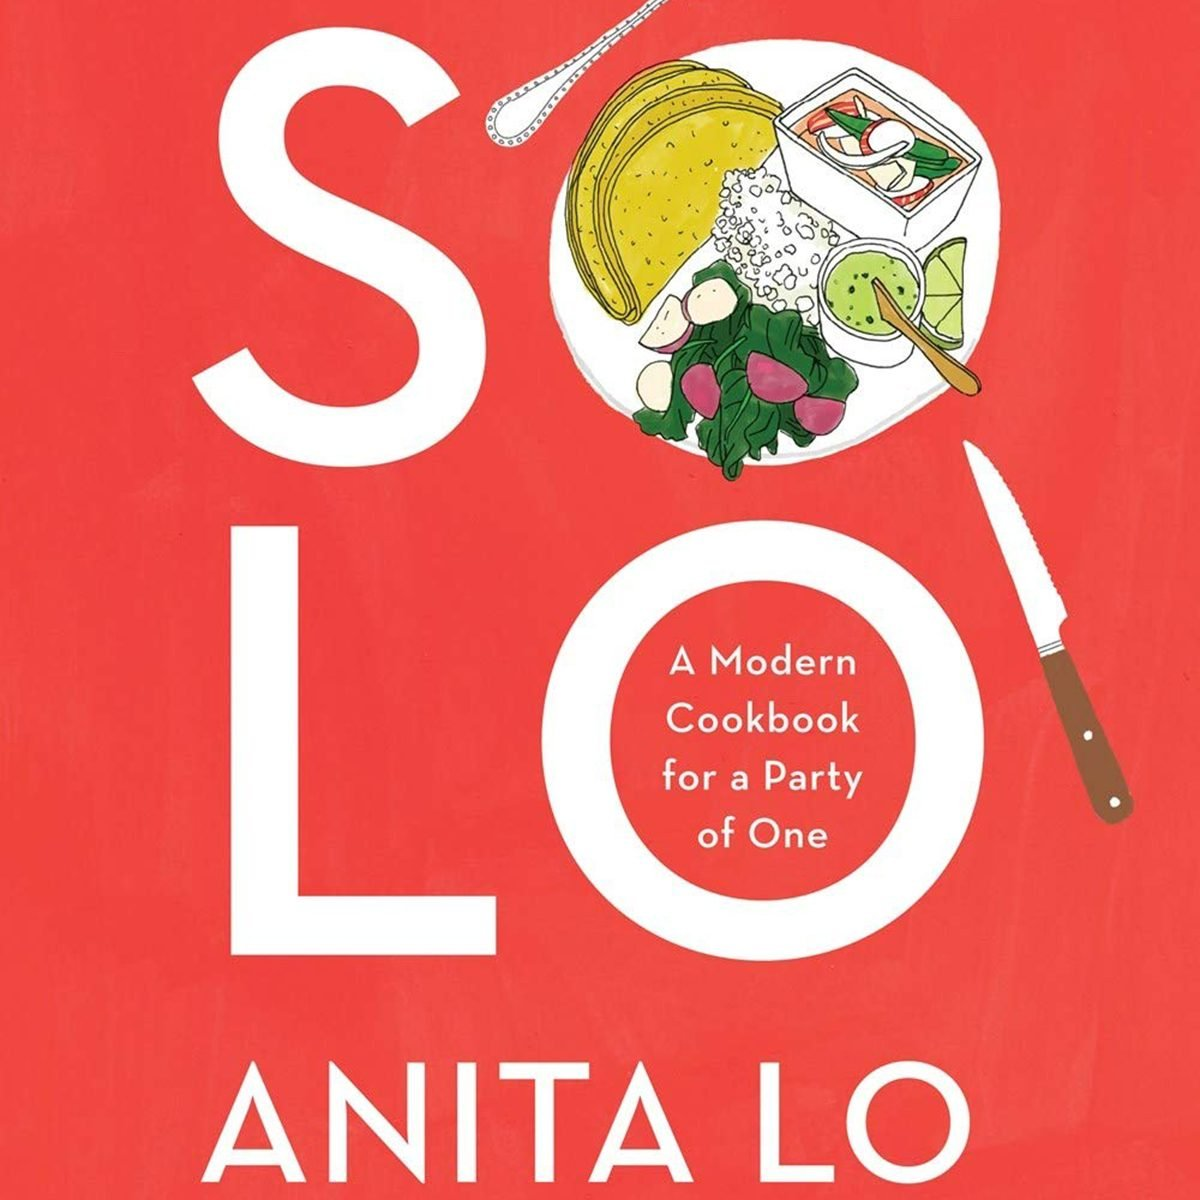 Solo: A Modern Cookbook for a Party of One; by Anita Lo